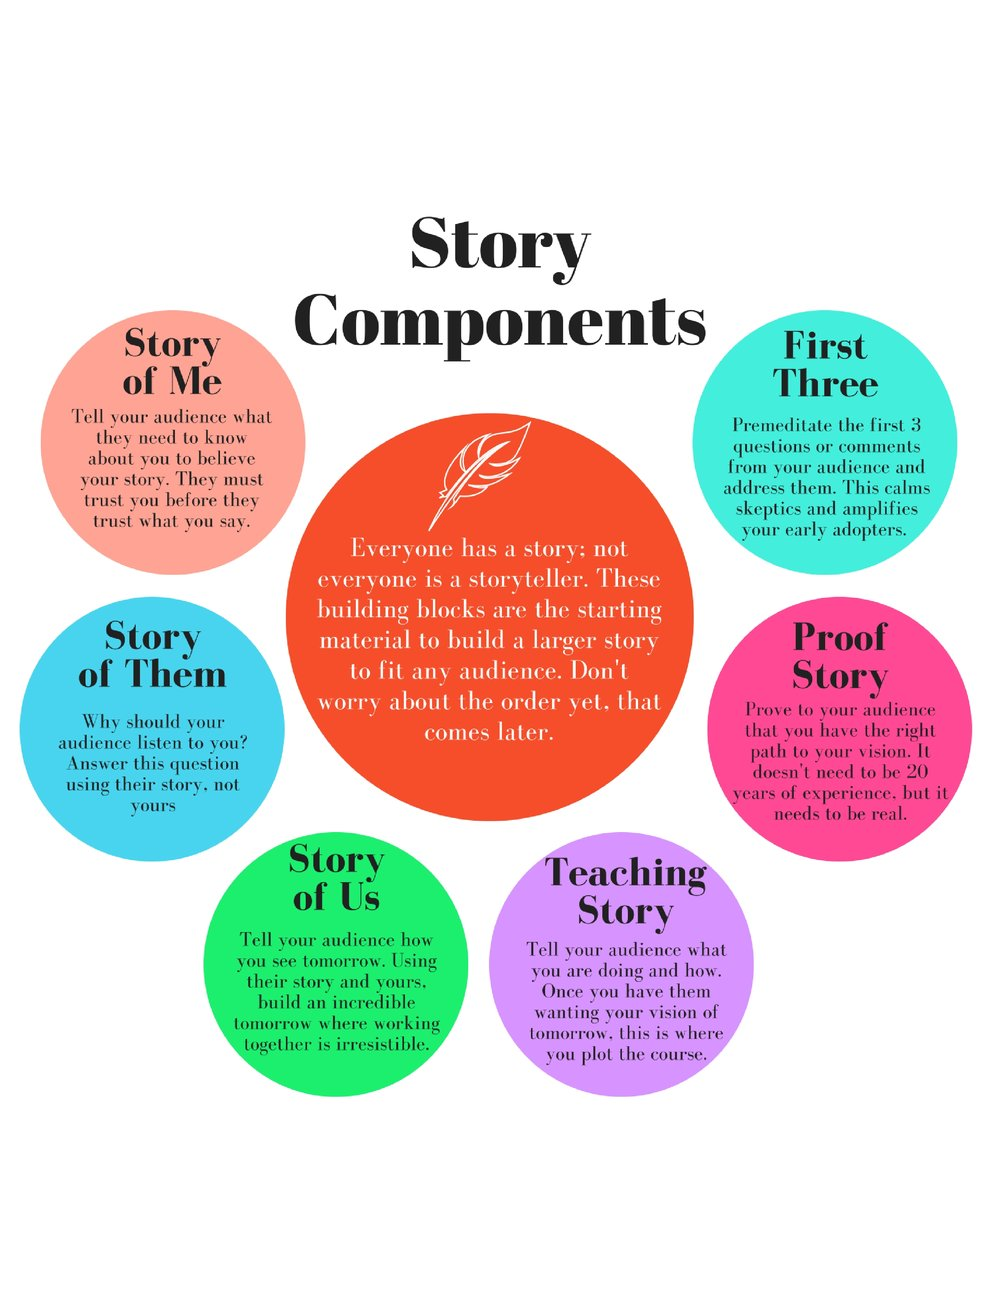 Story Components.jpg